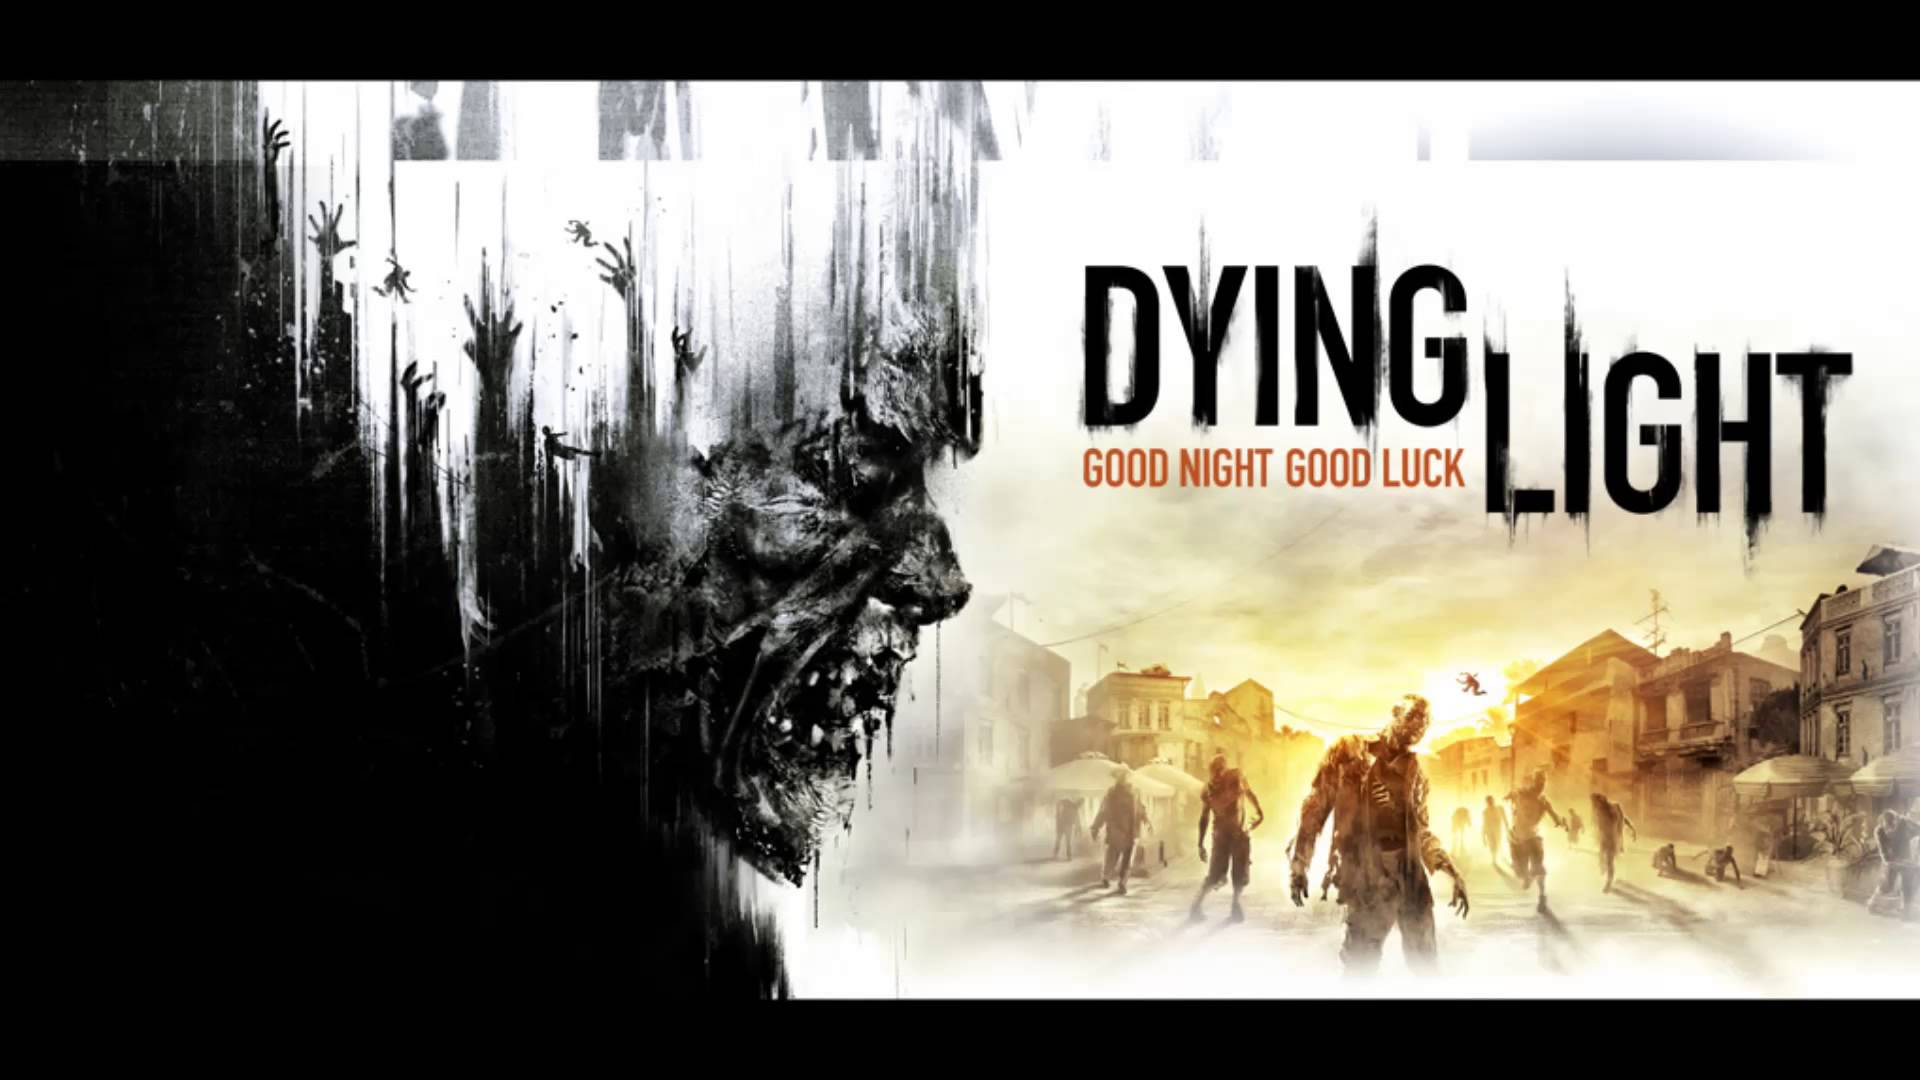 Dying Light Game Wallpaper Computer Desktop Background